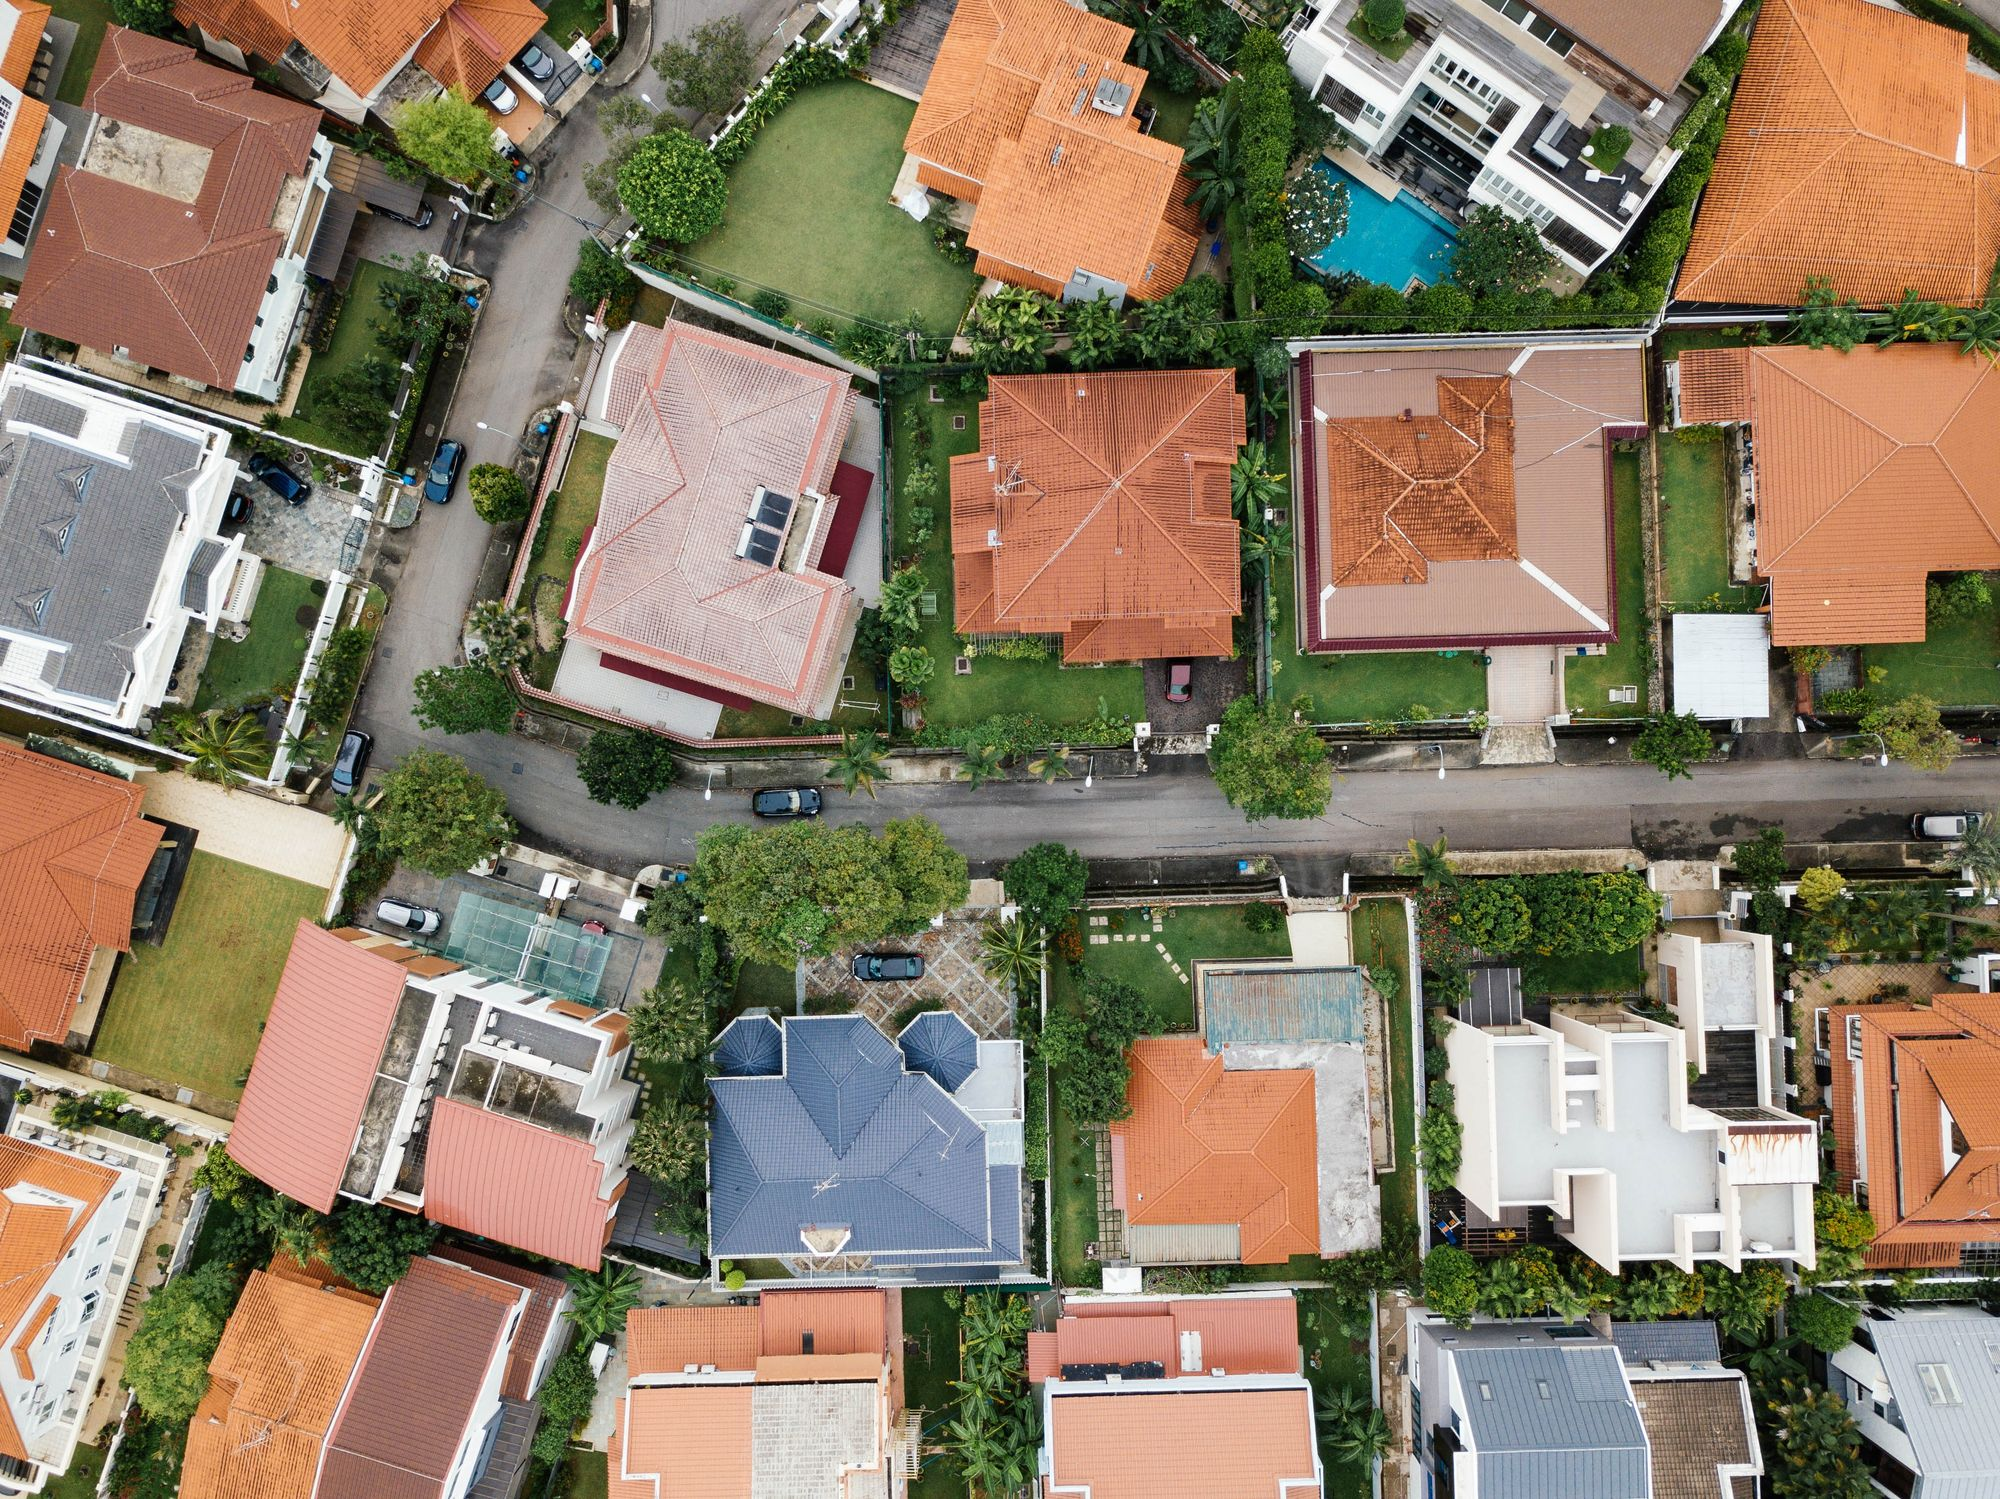 Why alternative lenders expand into real estate markets